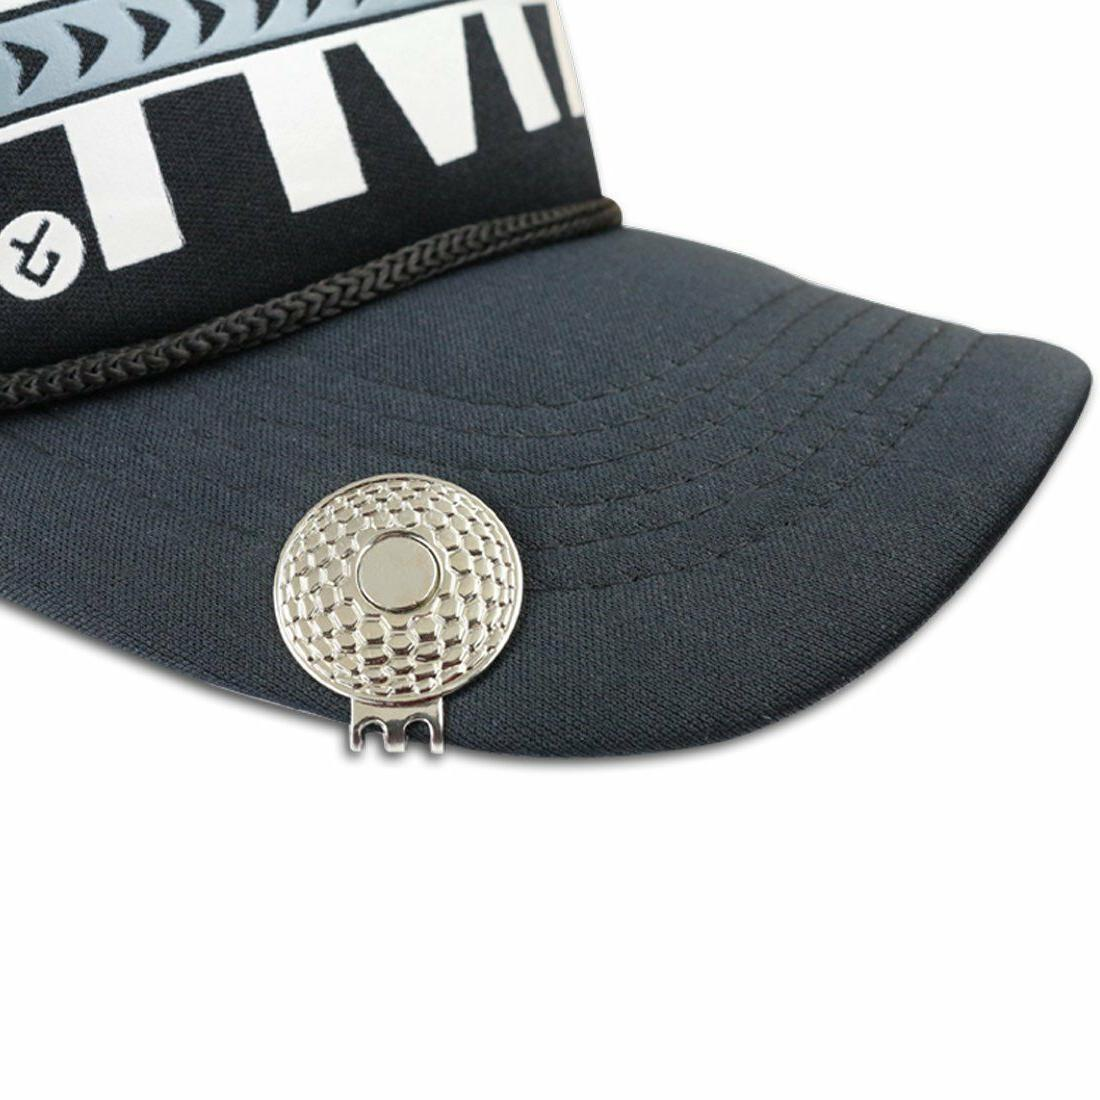 Magnetic Golf Hat Attaches to Belt